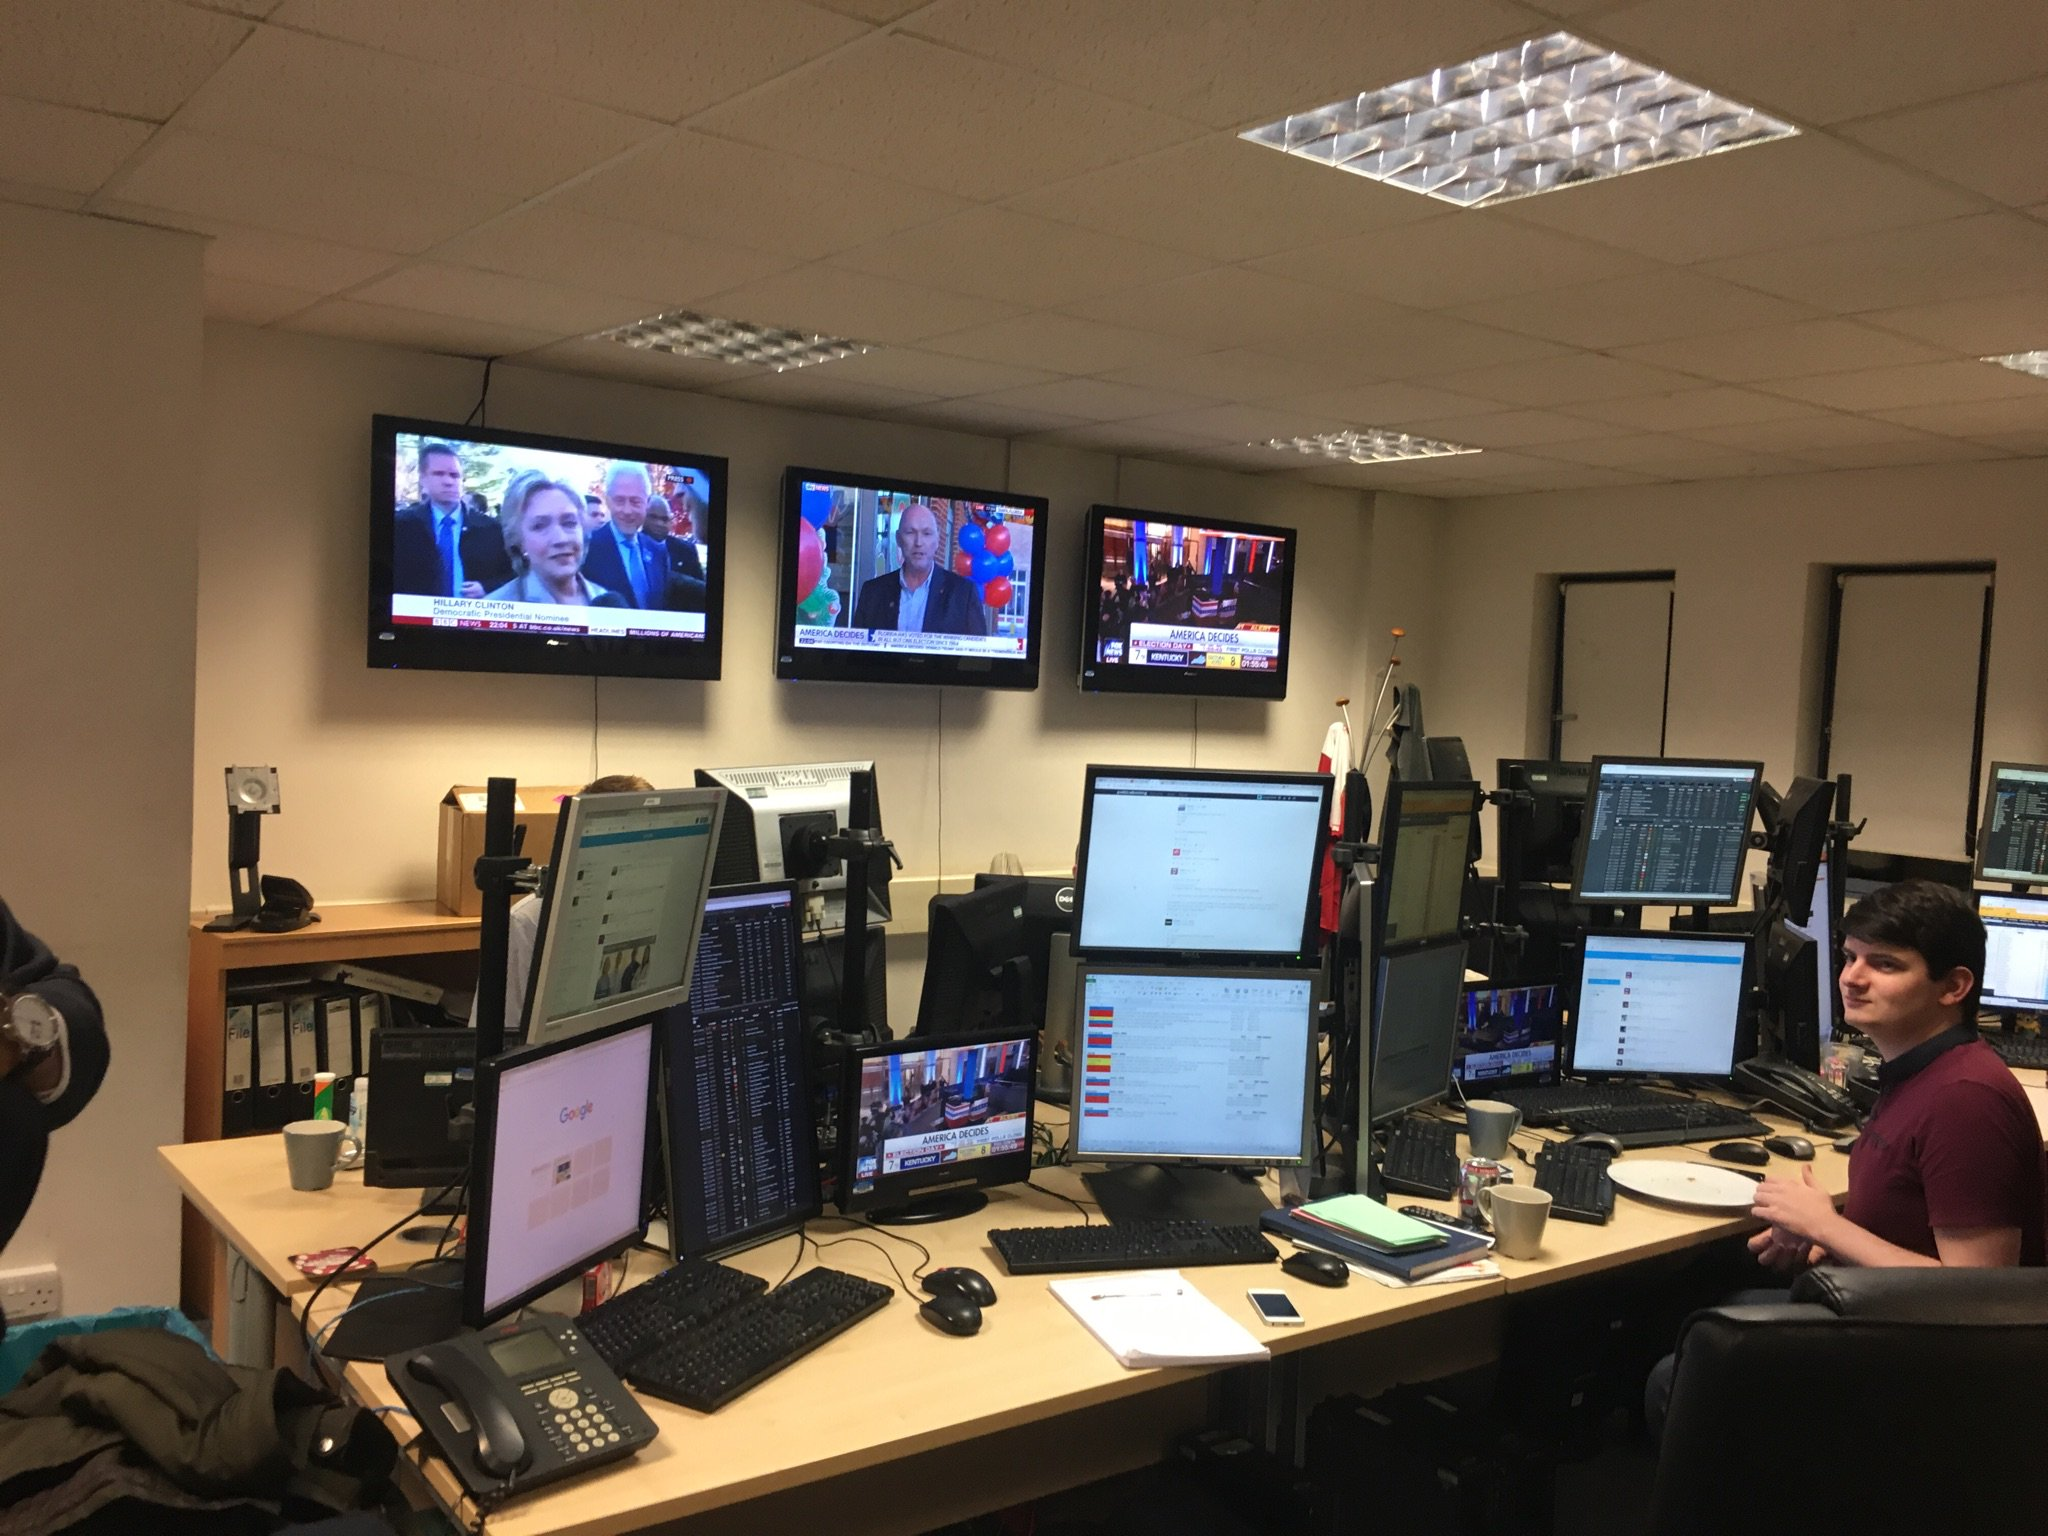 We're live on the trading floor at the SPIN offices, ready for a busy night. Join us with the hashtags #SPINElection #Election2016 https://t.co/0zelLaPfol